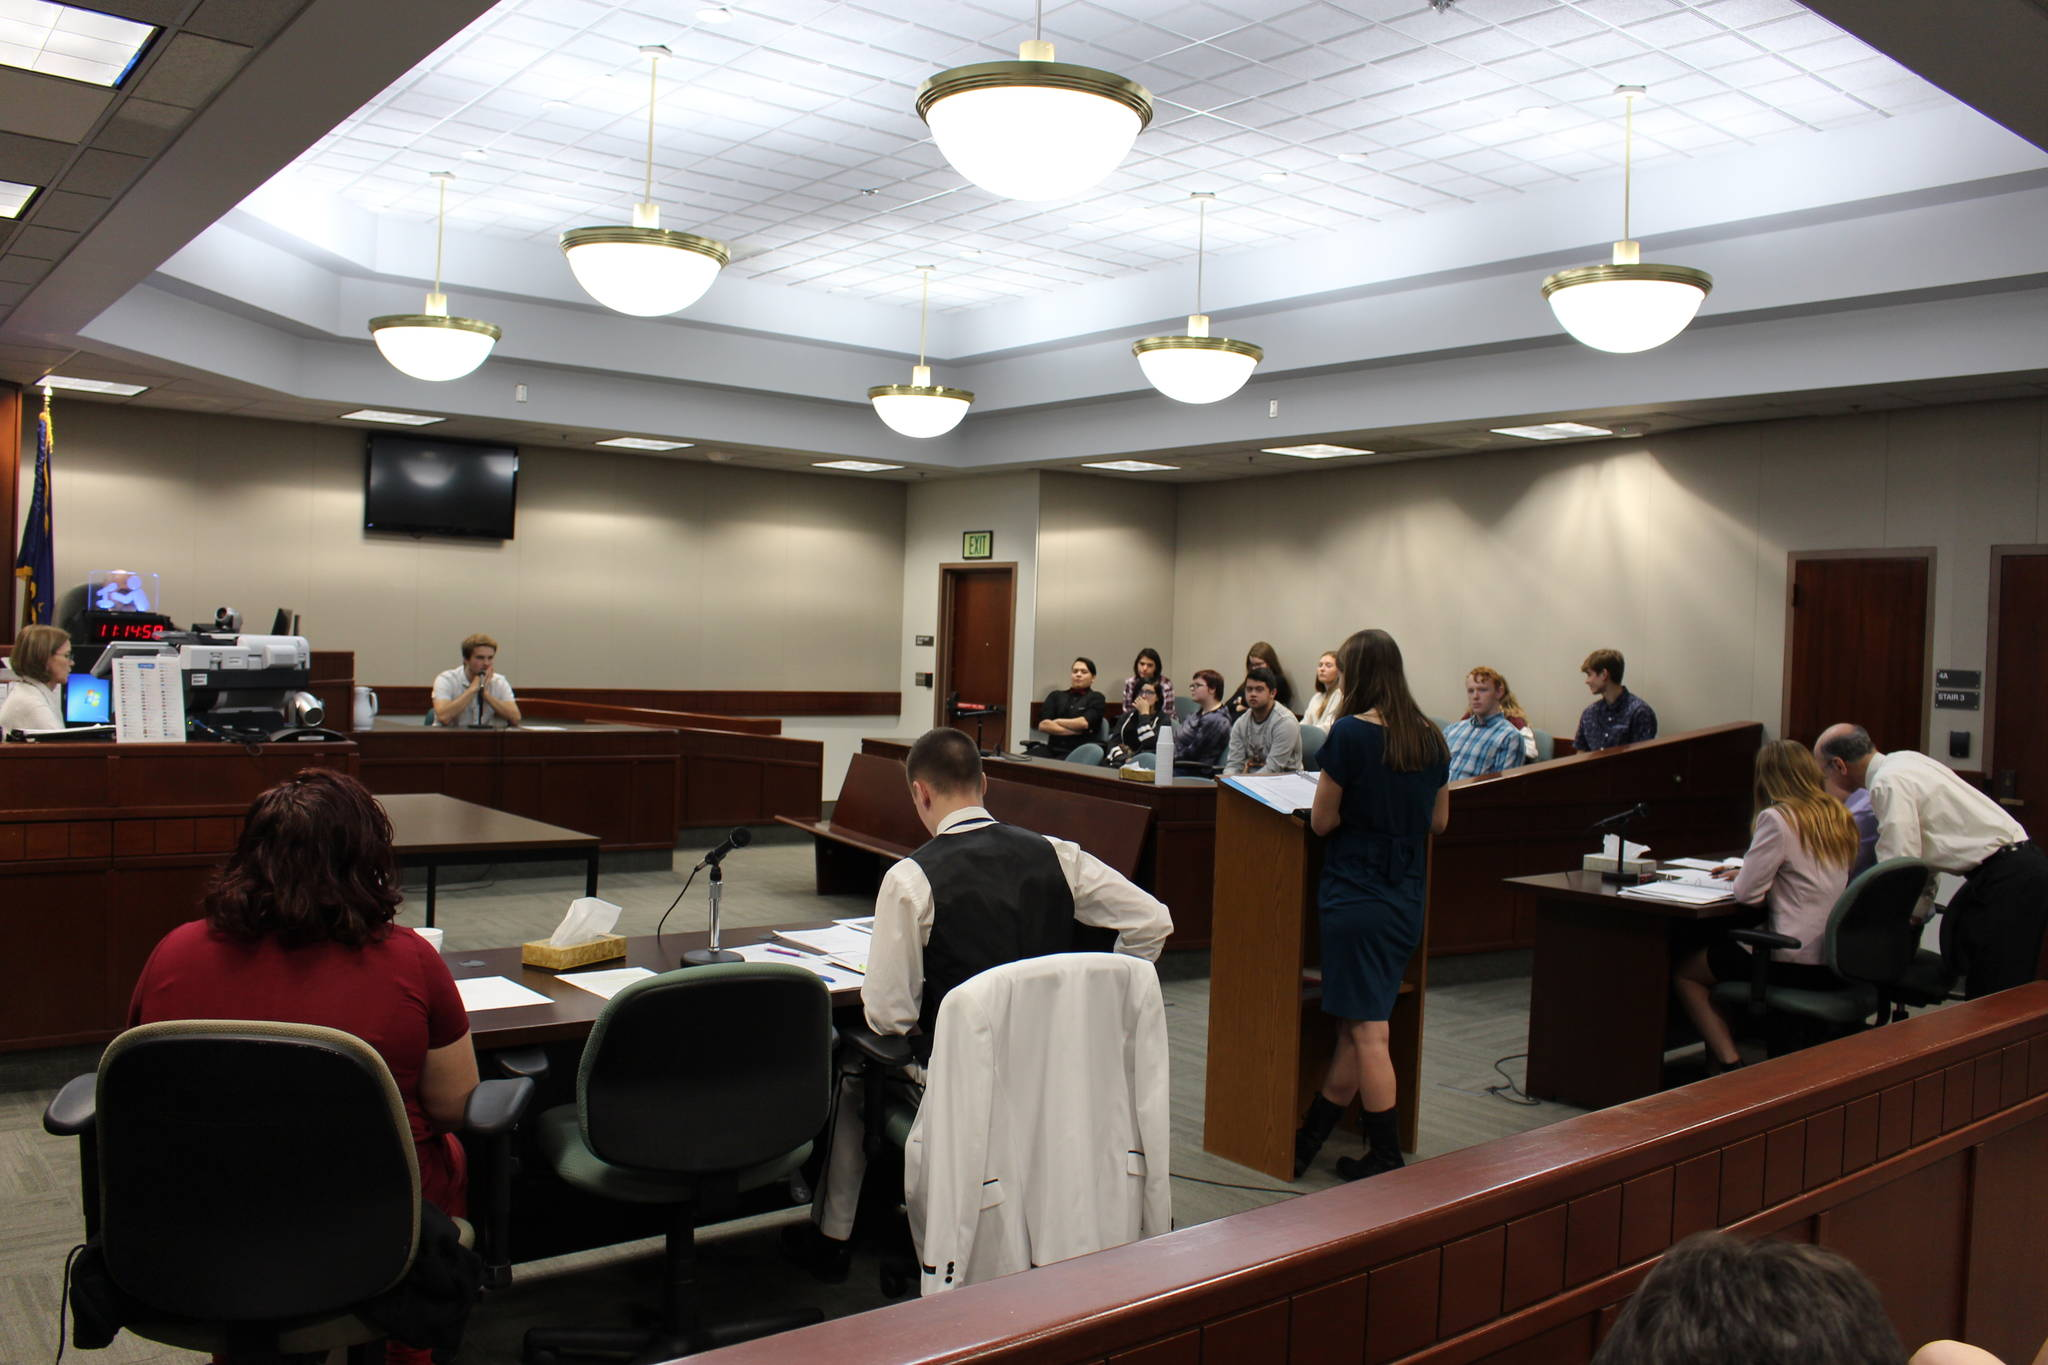 Students from Nikiski/Middle High School participate in a mock trial at the Kenai Courthouse on Dec. 3, 2019. (Photo by Brian Mazurek/Peninsula Clarion)